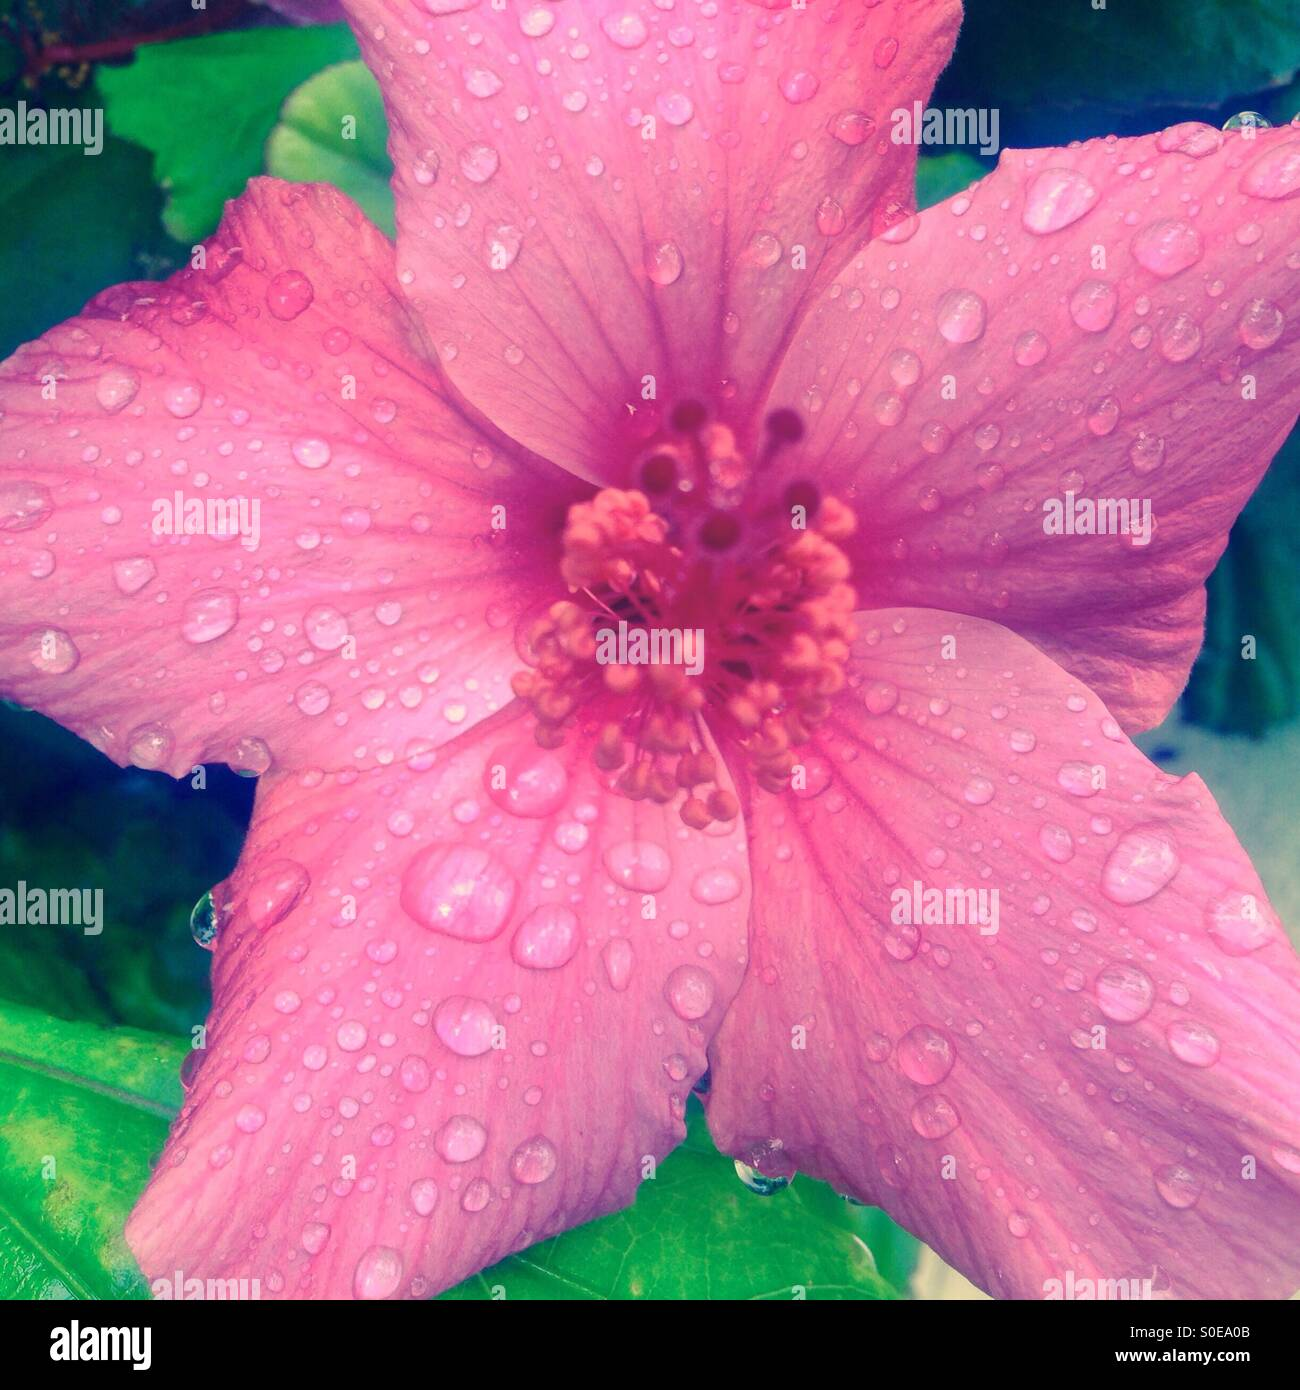 Hibiscus flower with rain droplets - Stock Image